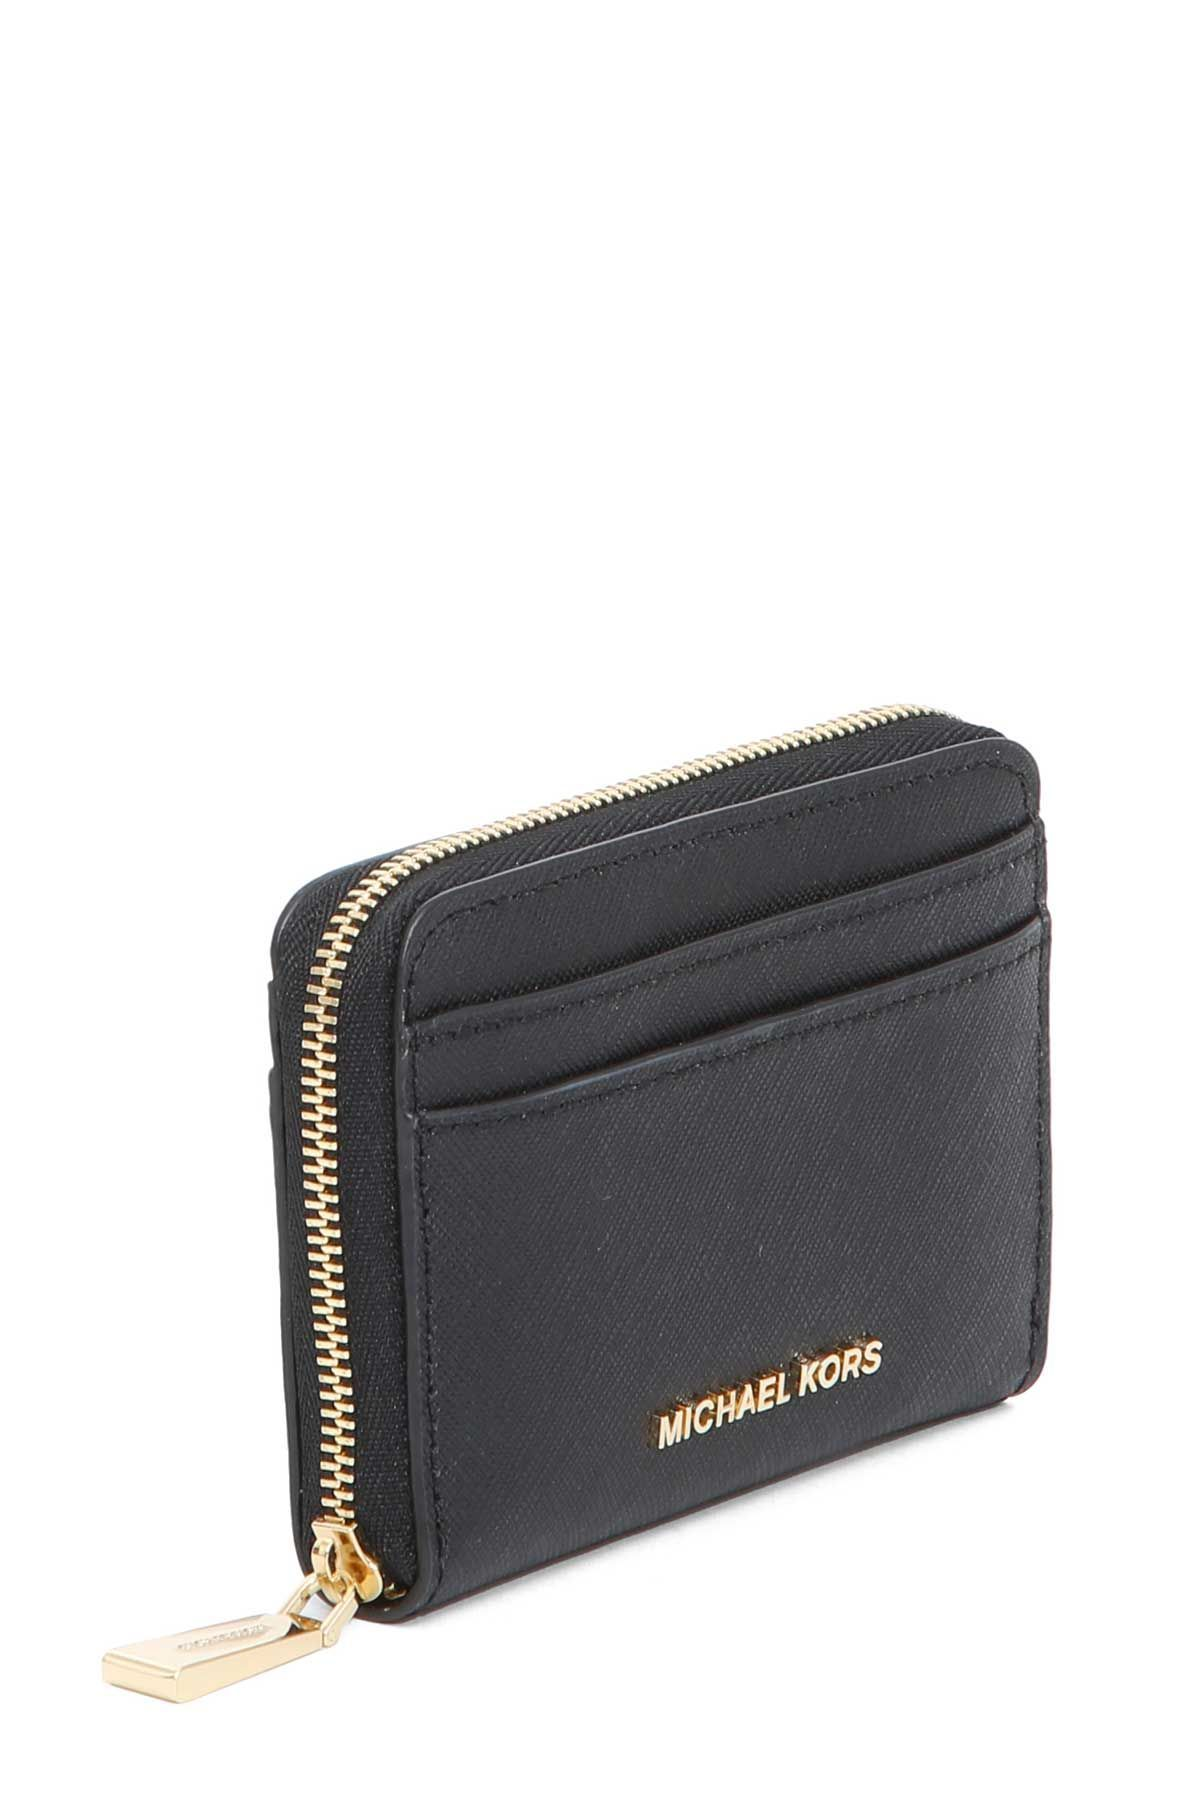 MICHAEL MICHAEL KORS MICHAEL MICHAEL KORS BLACK LEATHER SMALL ...